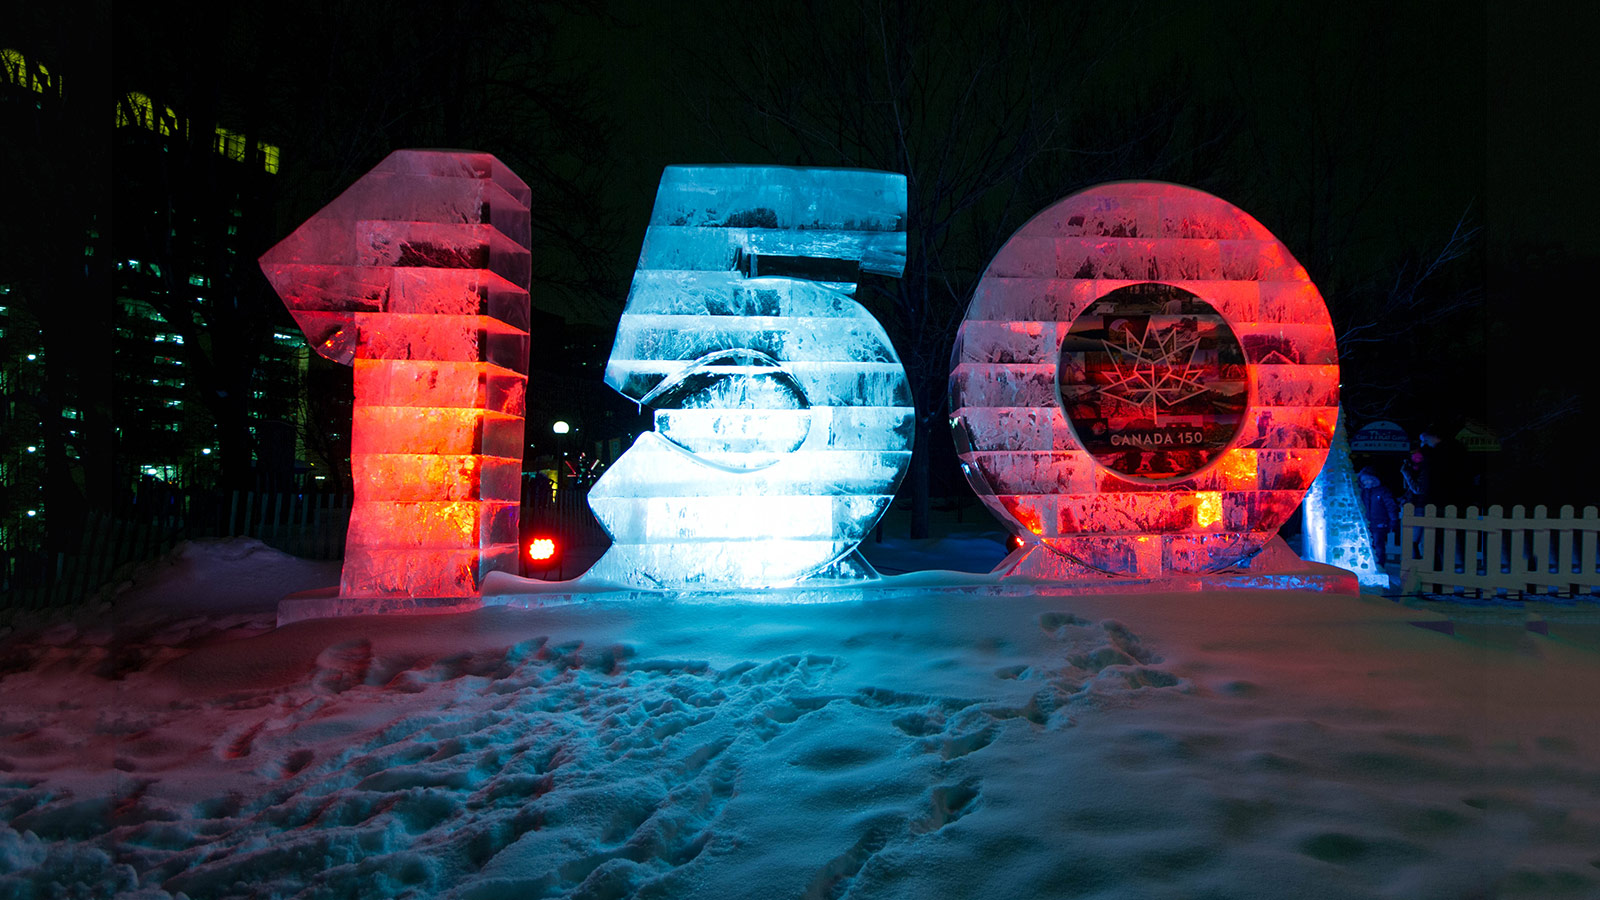 Ice sculpture that reads 150 illuminated in red and white